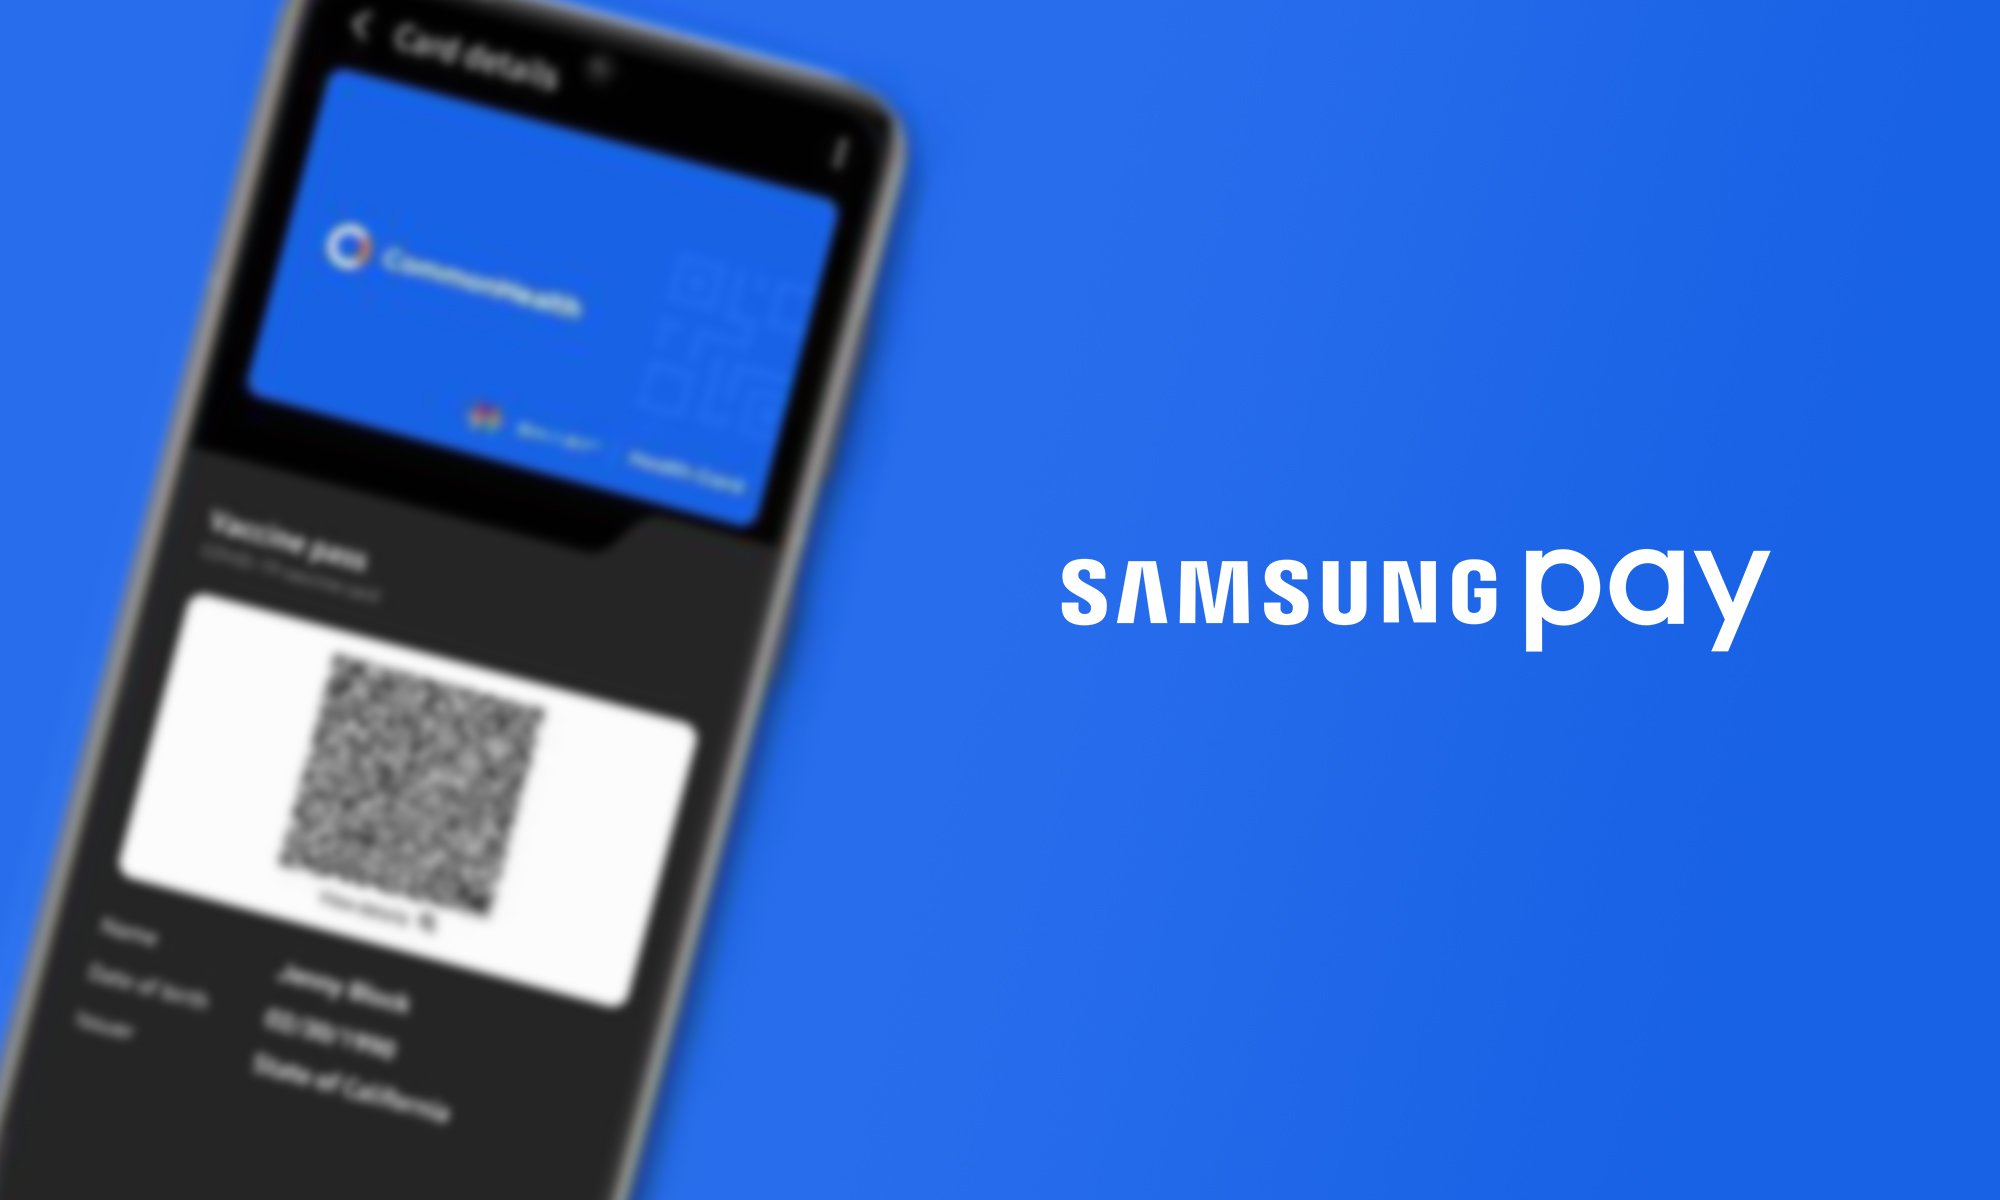 samsung pay introduces support for digital covid-19 vaccination cards